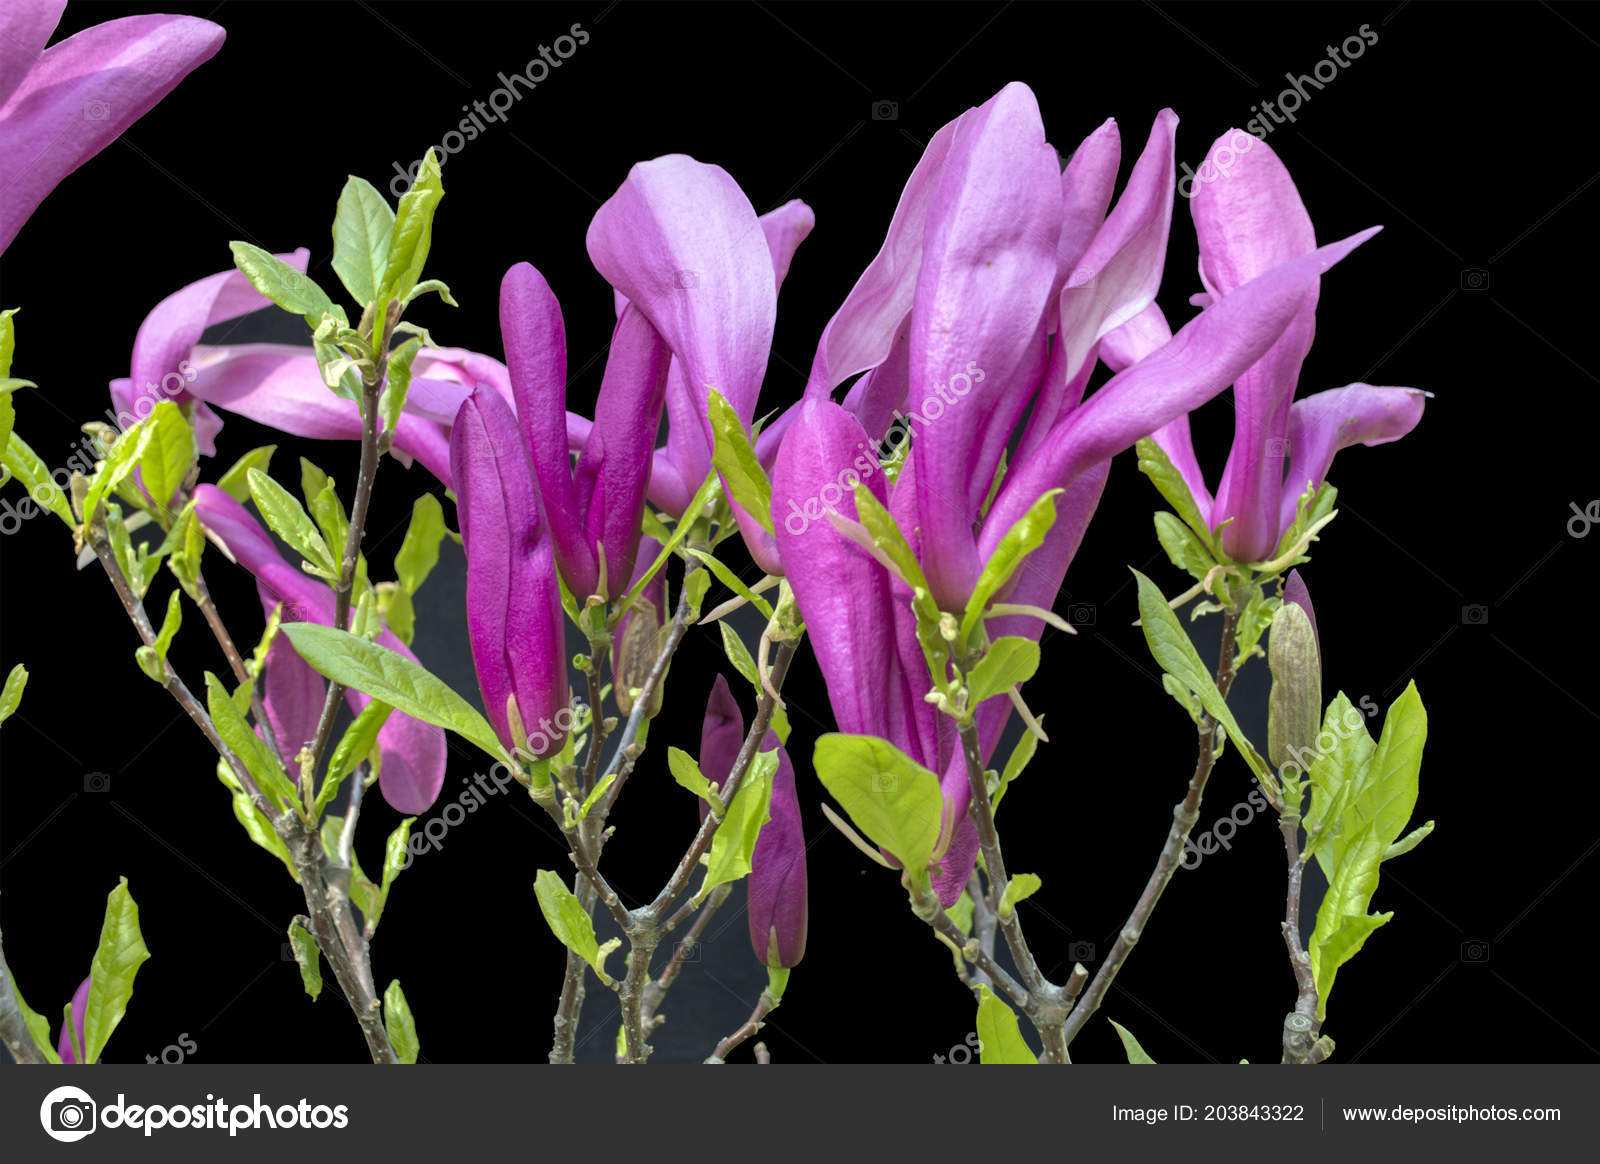 Magnolia Flowers On Black Background Colorful Blooming Spring